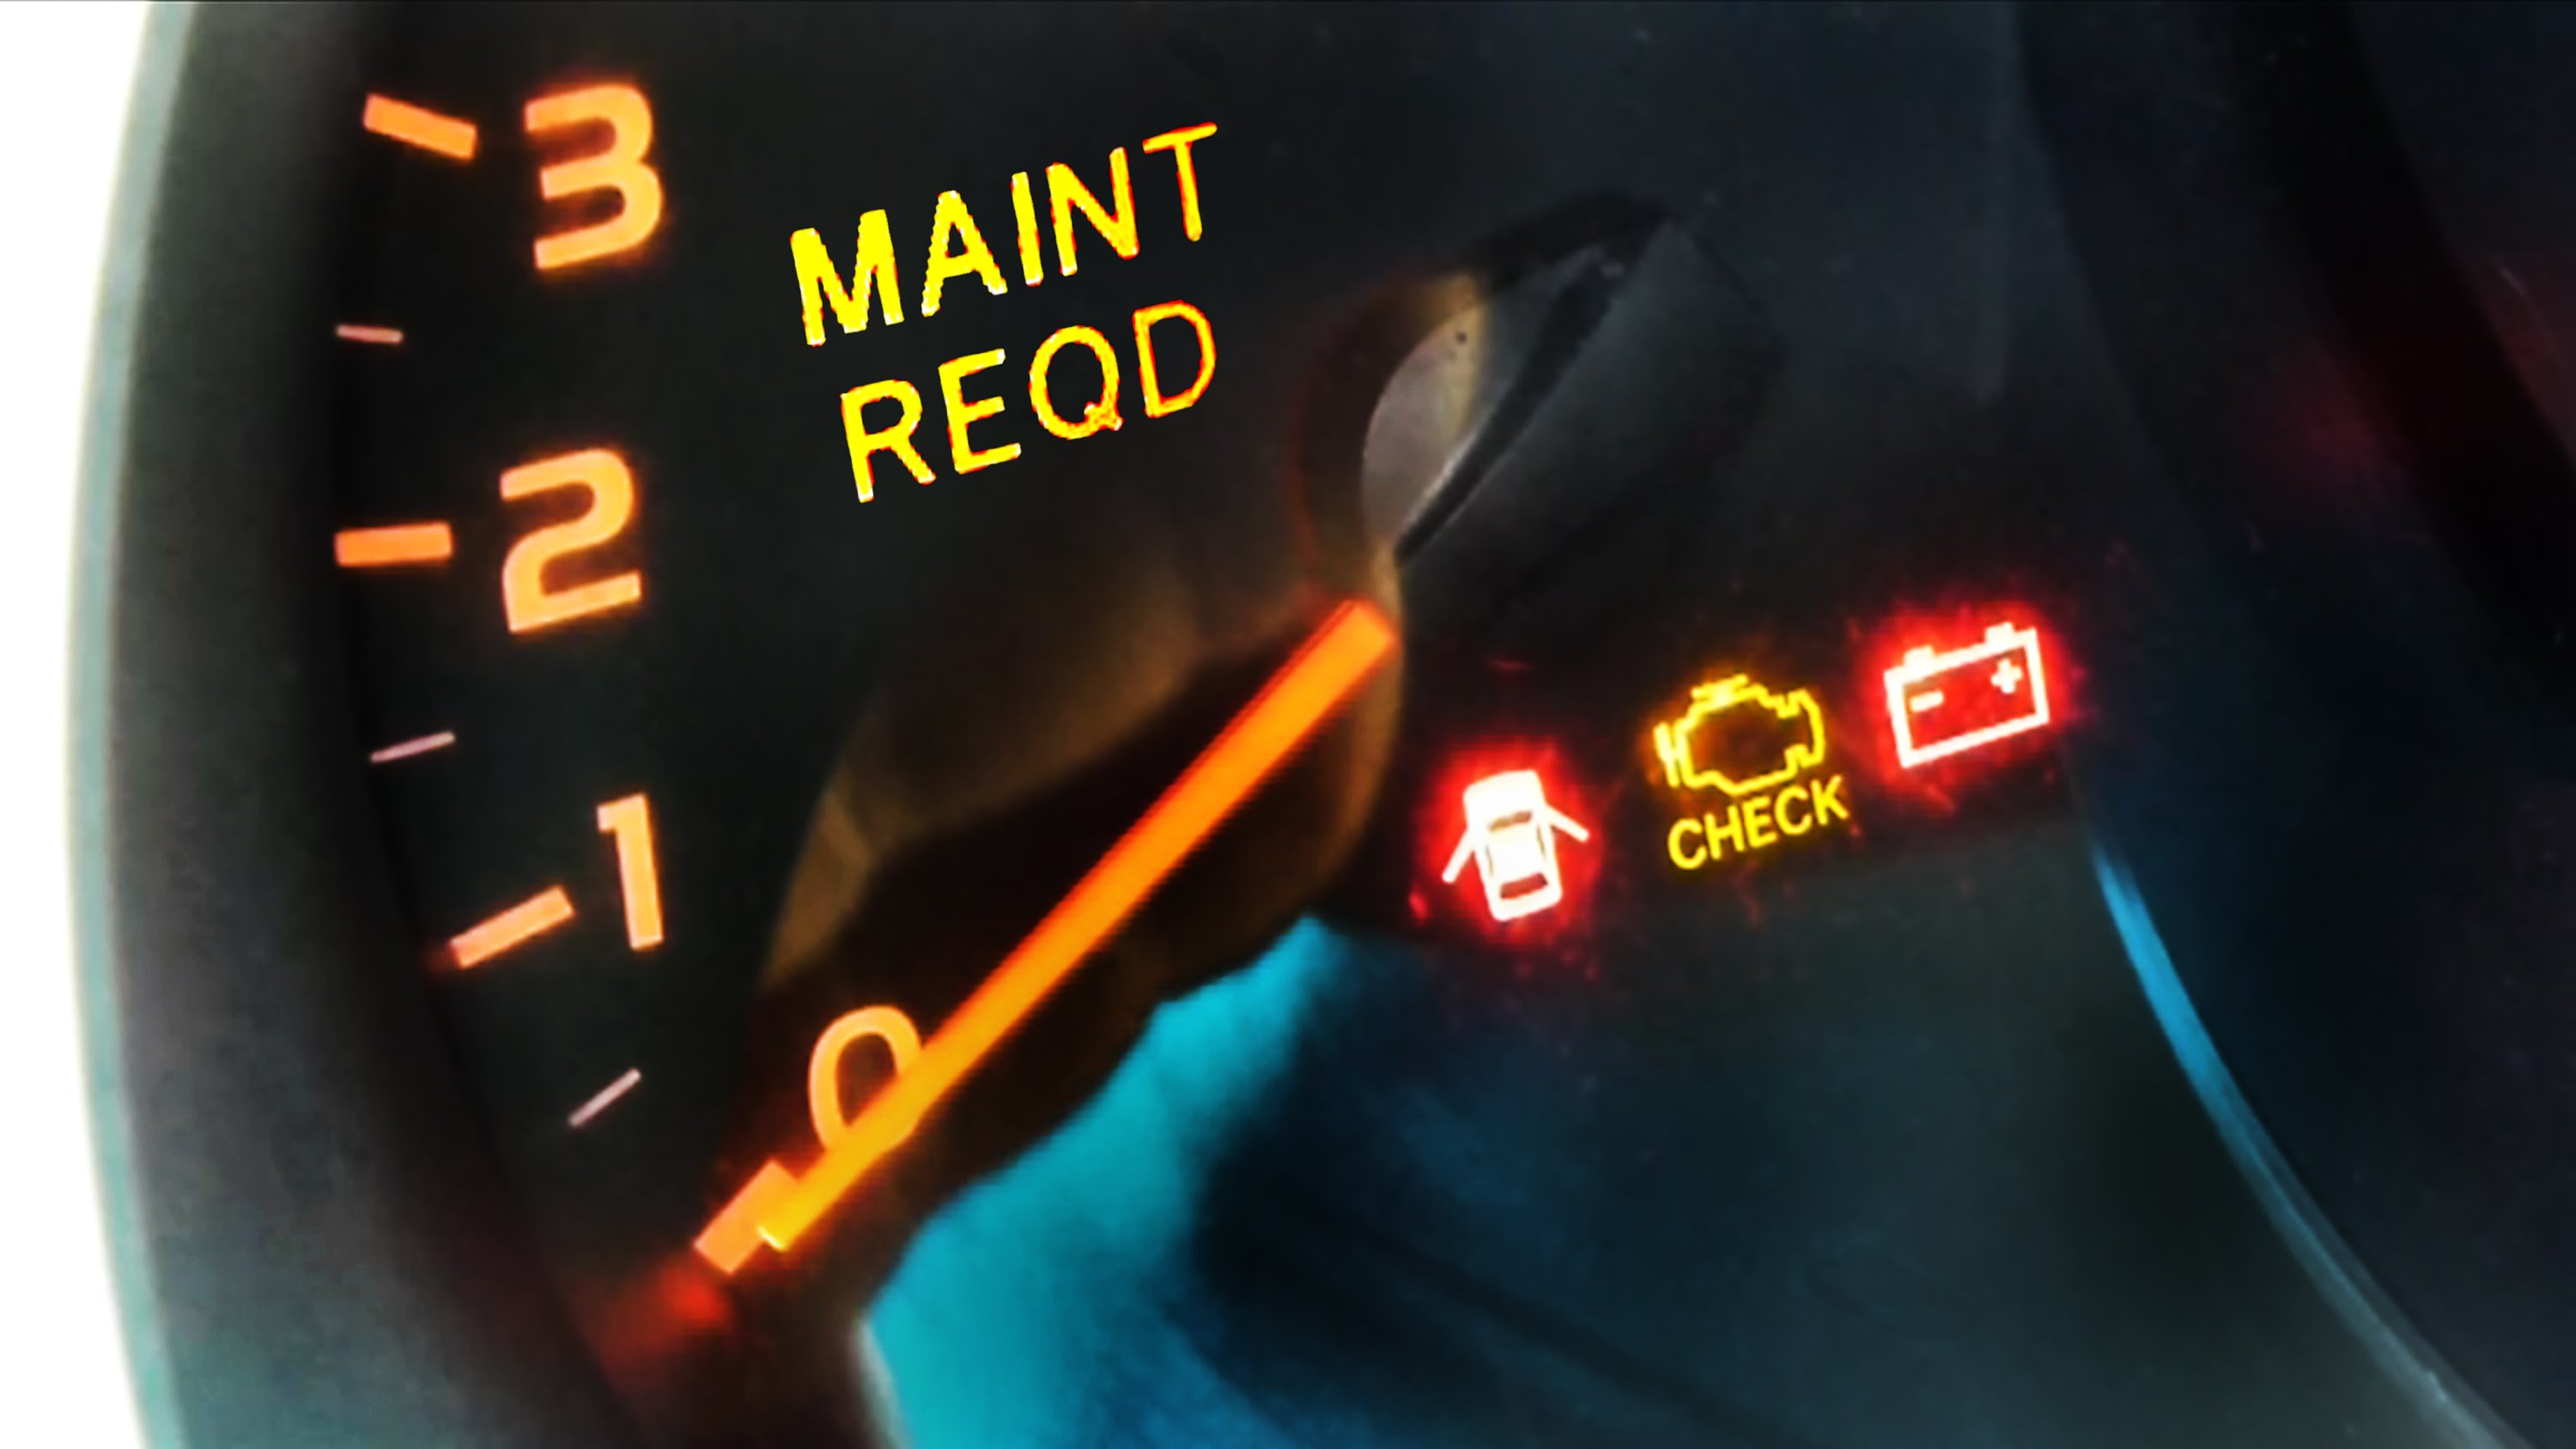 How Do I Reset The Quot Maintenance Required Quot Light In My Lexus